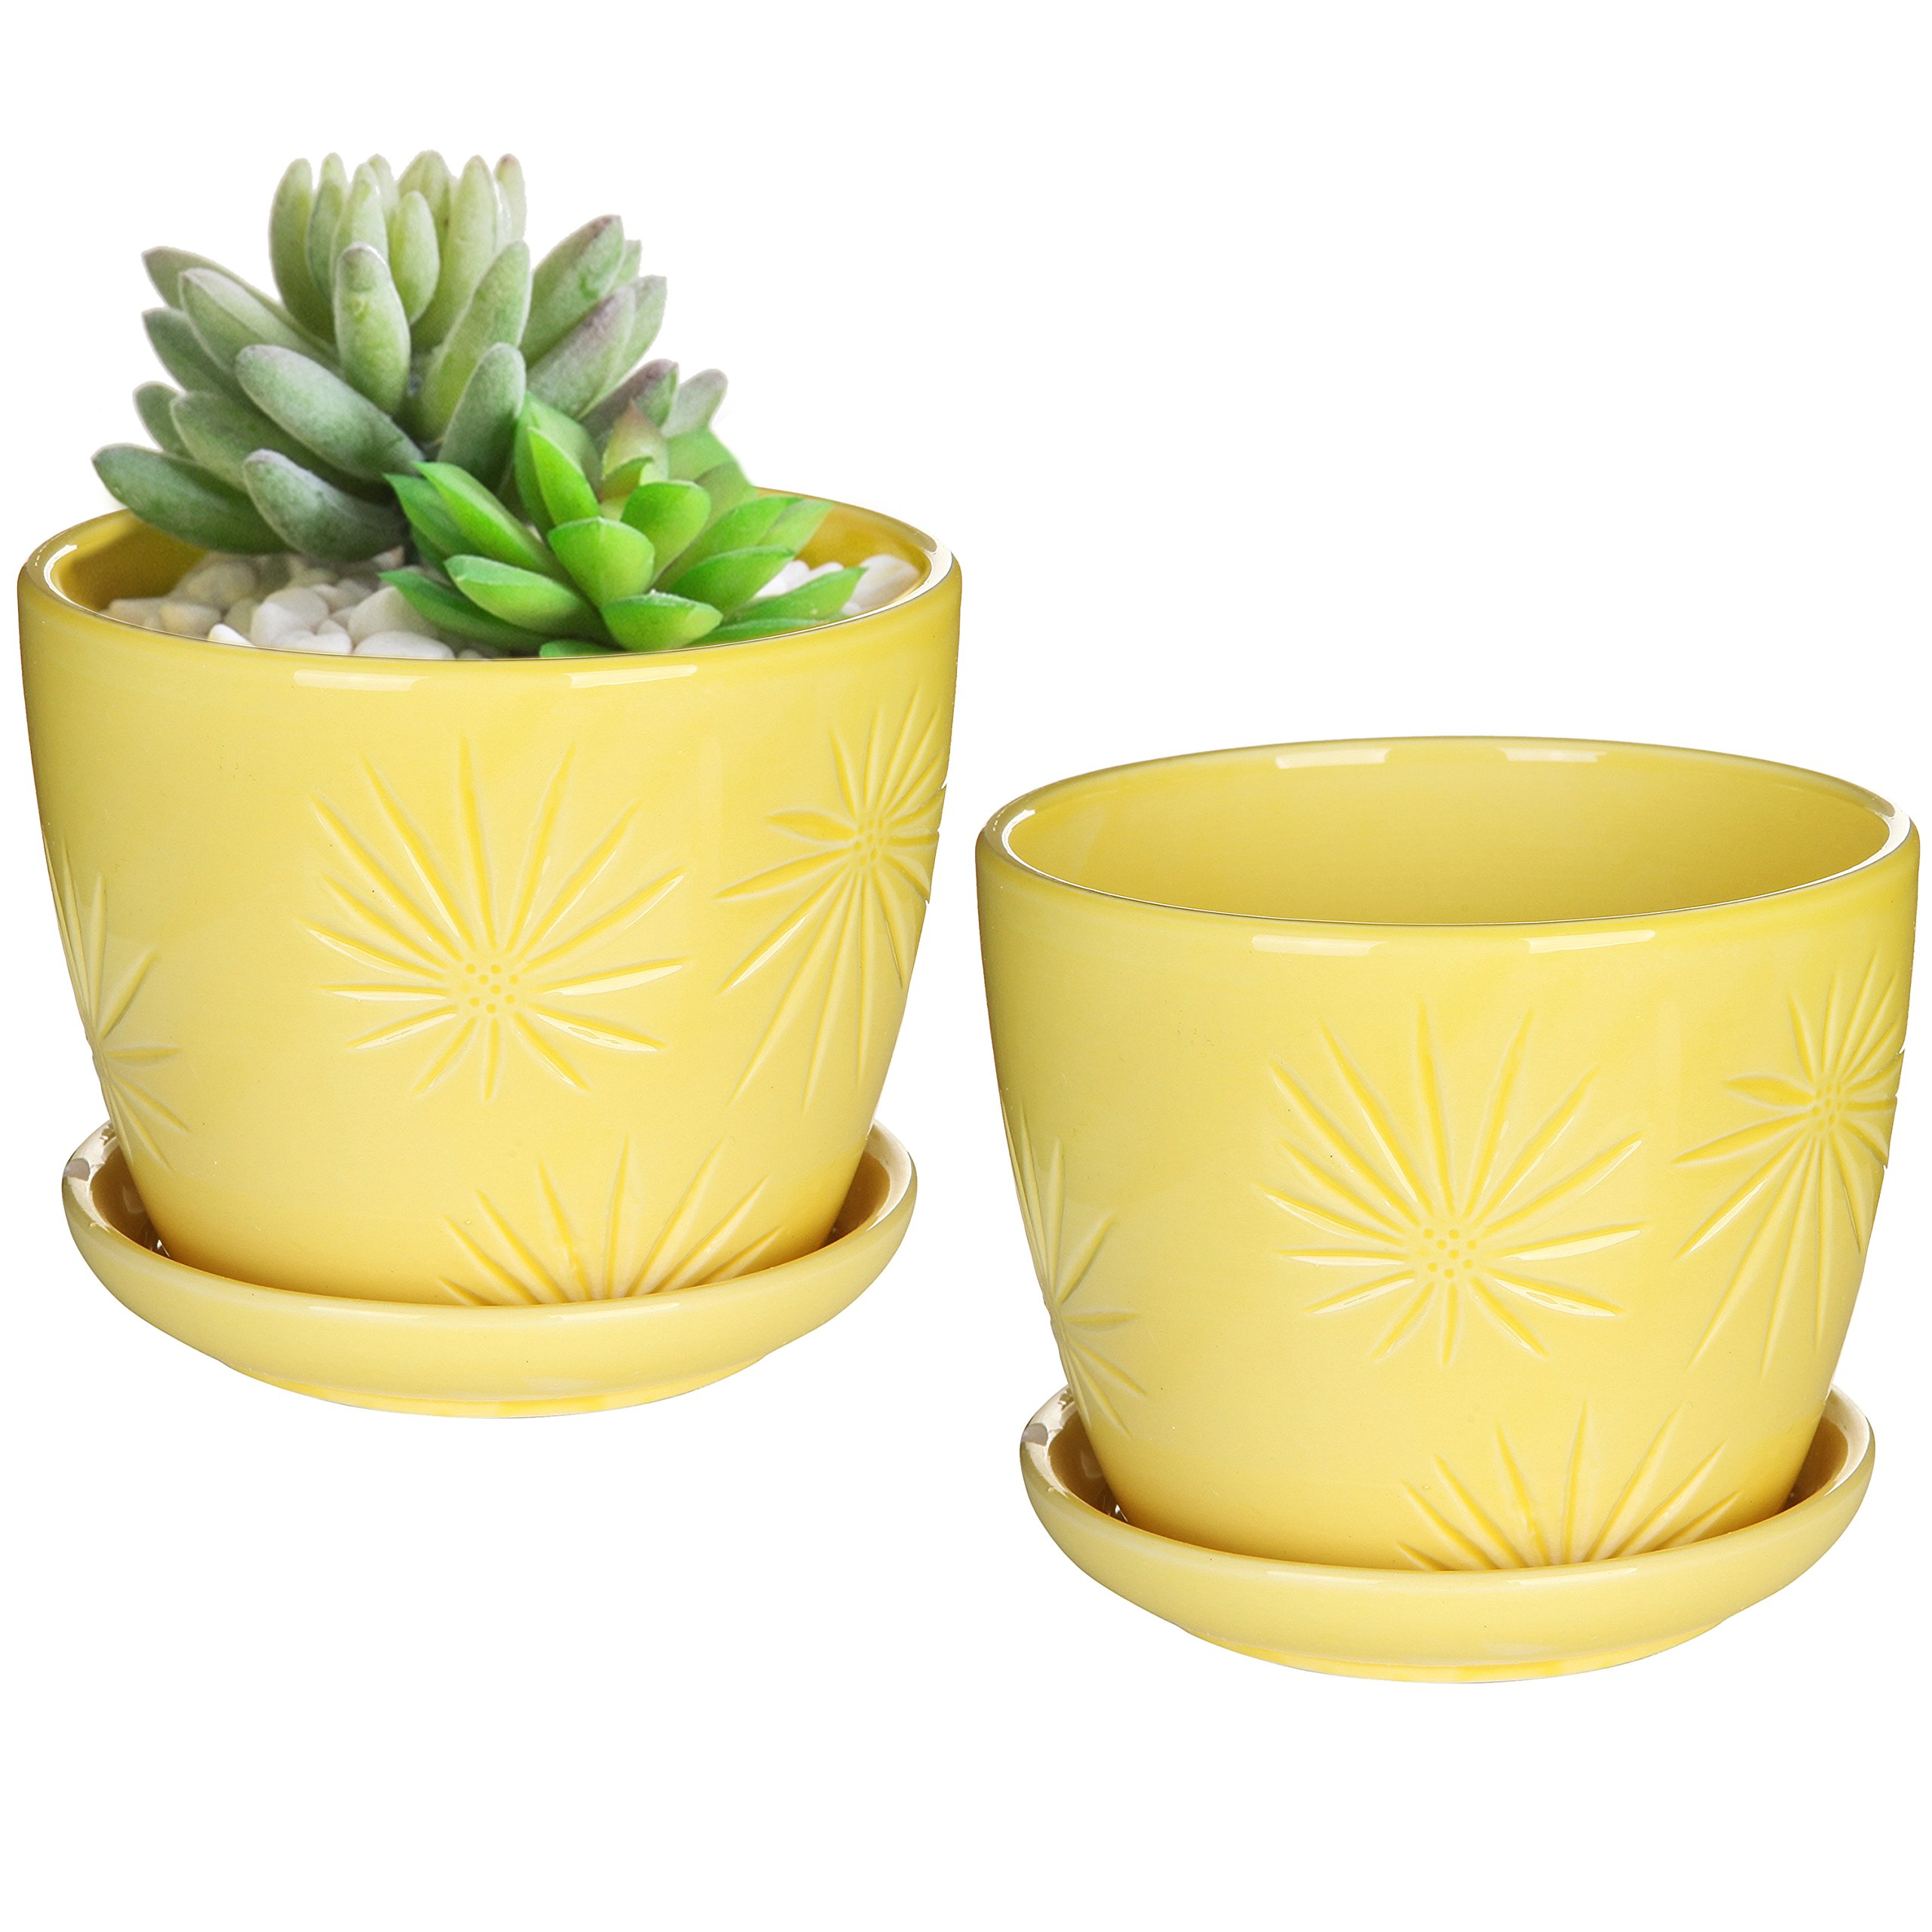 MyGift Set of 2 Yellow Sunburst Design Ceramic Flower Planter Pots/Decorative Plant Containers with Saucers by MyGift